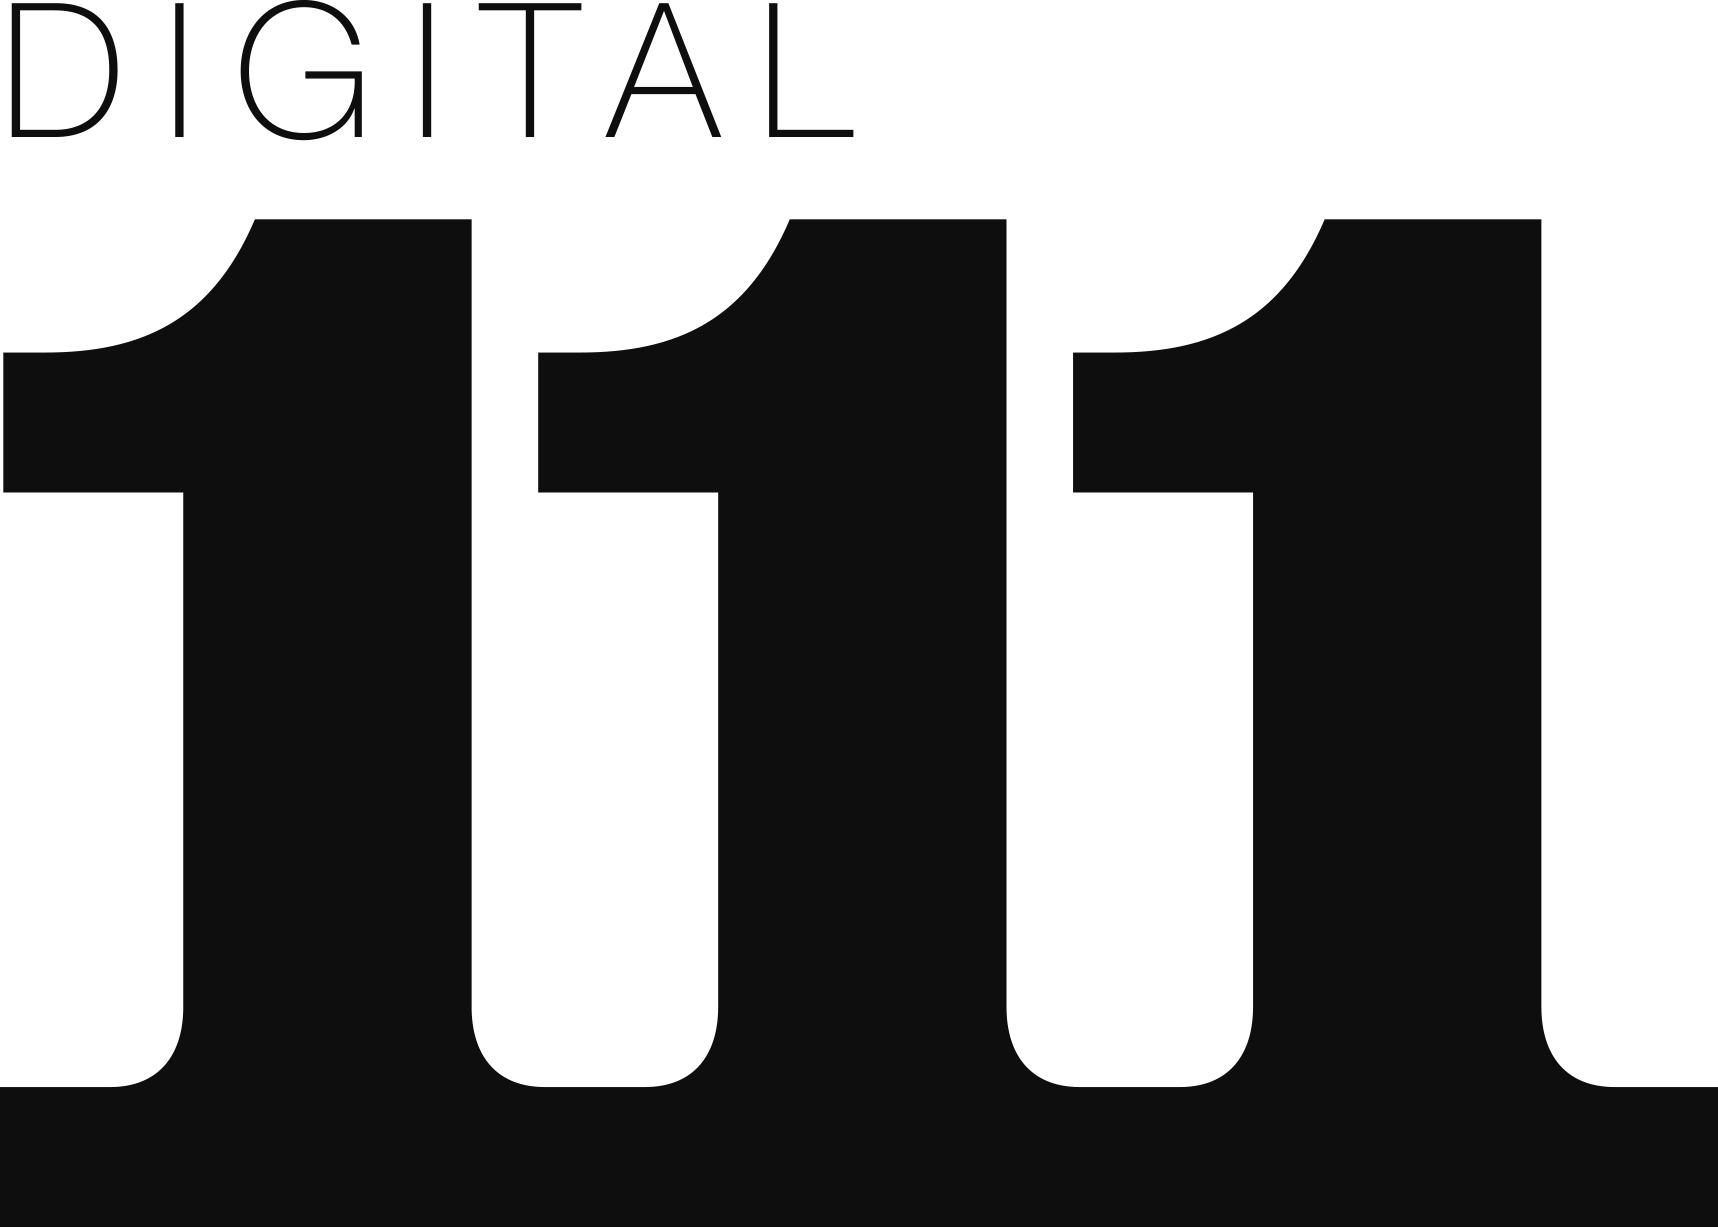 Logo Digital 111